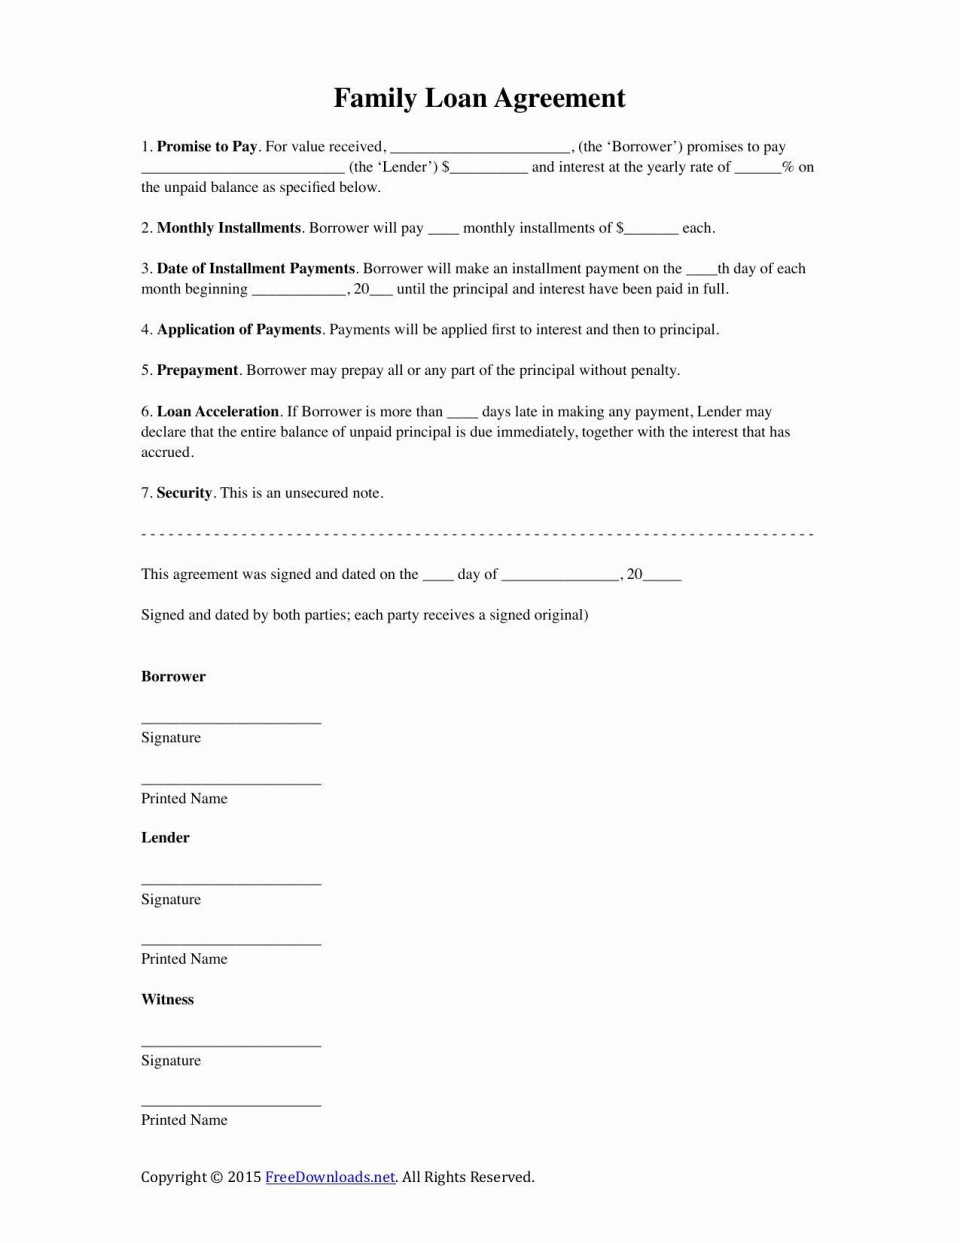 000 Wonderful Family Loan Agreement Format India Idea 960